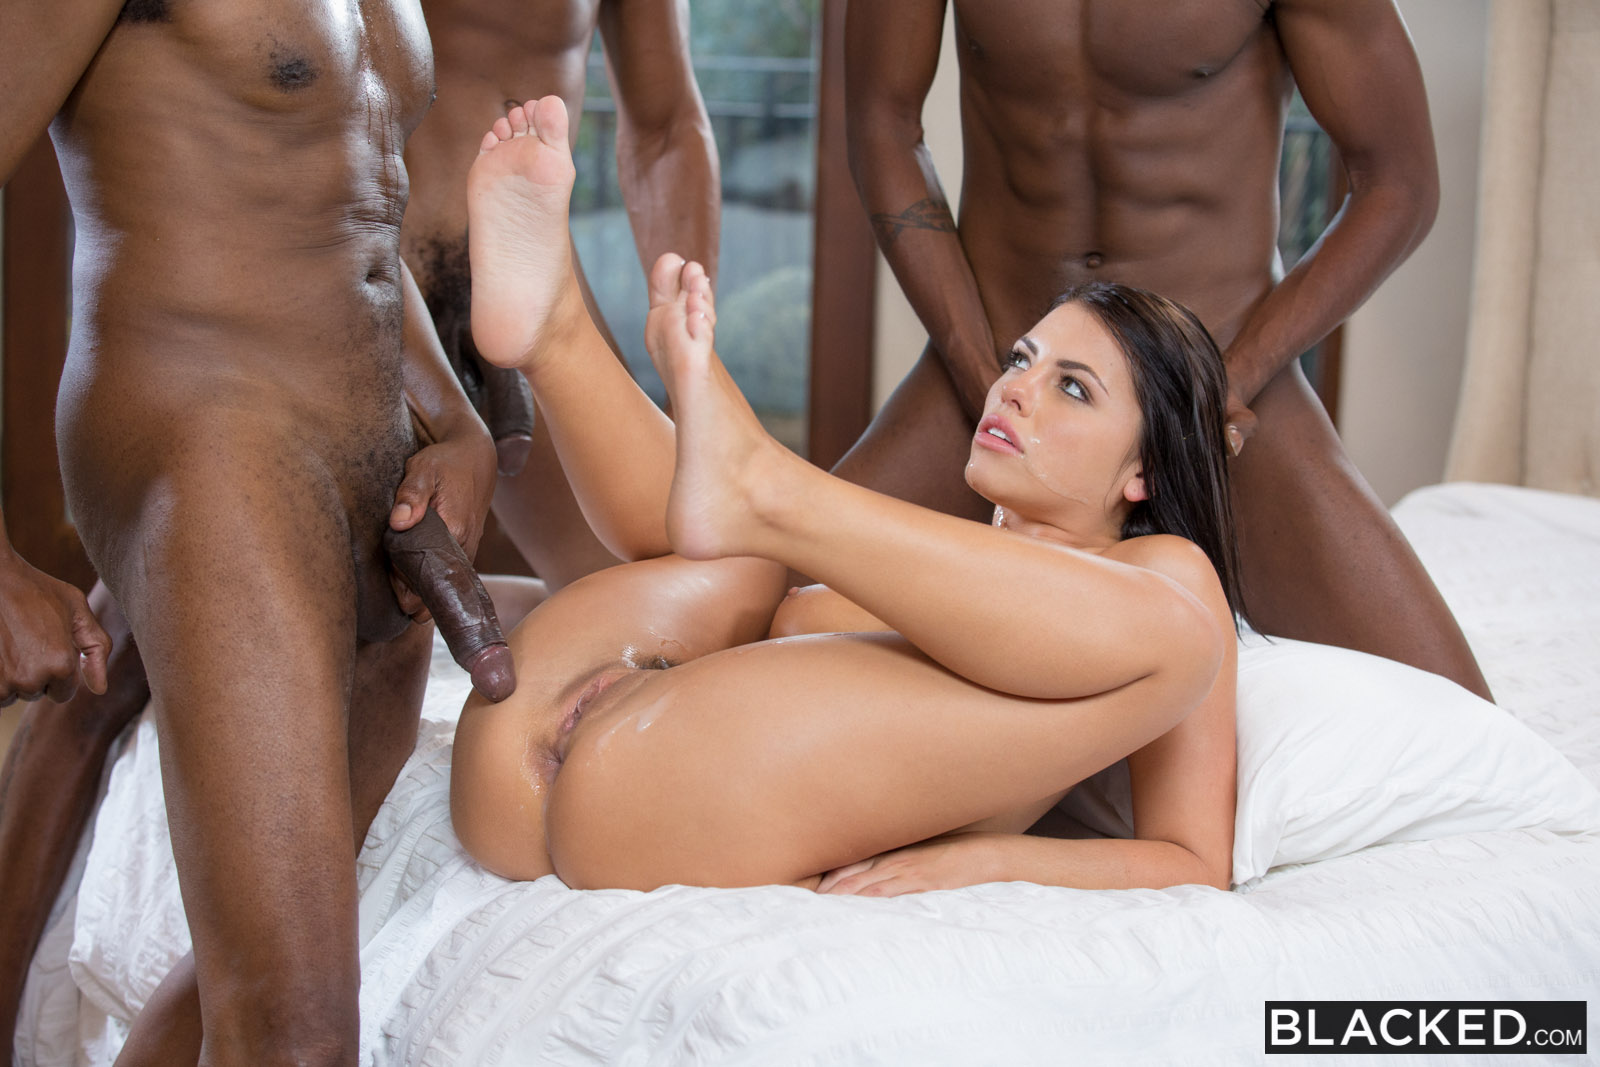 adriana chechik blacked